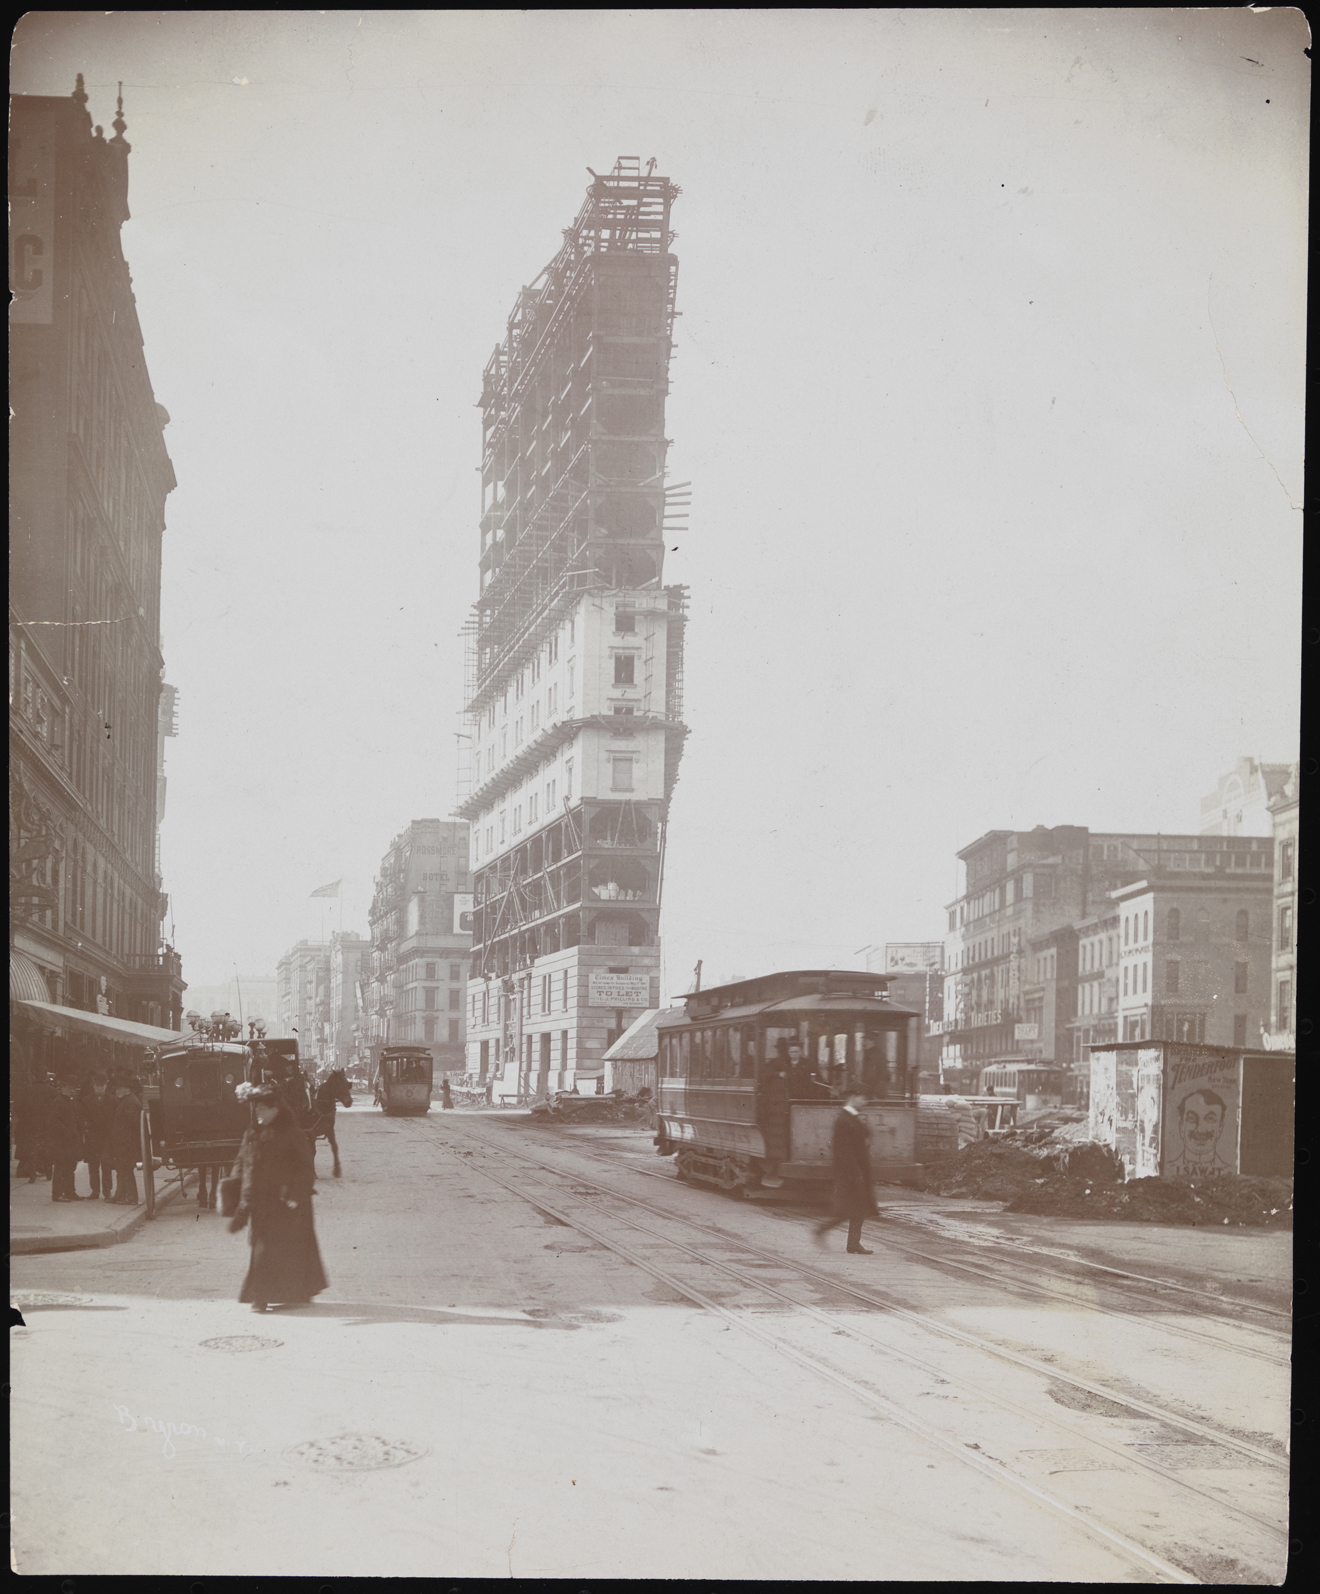 Byron Company. Buildings, Times Building Under Construction, ca. 1903. Museum of the City of New York. 93.1.1.16687